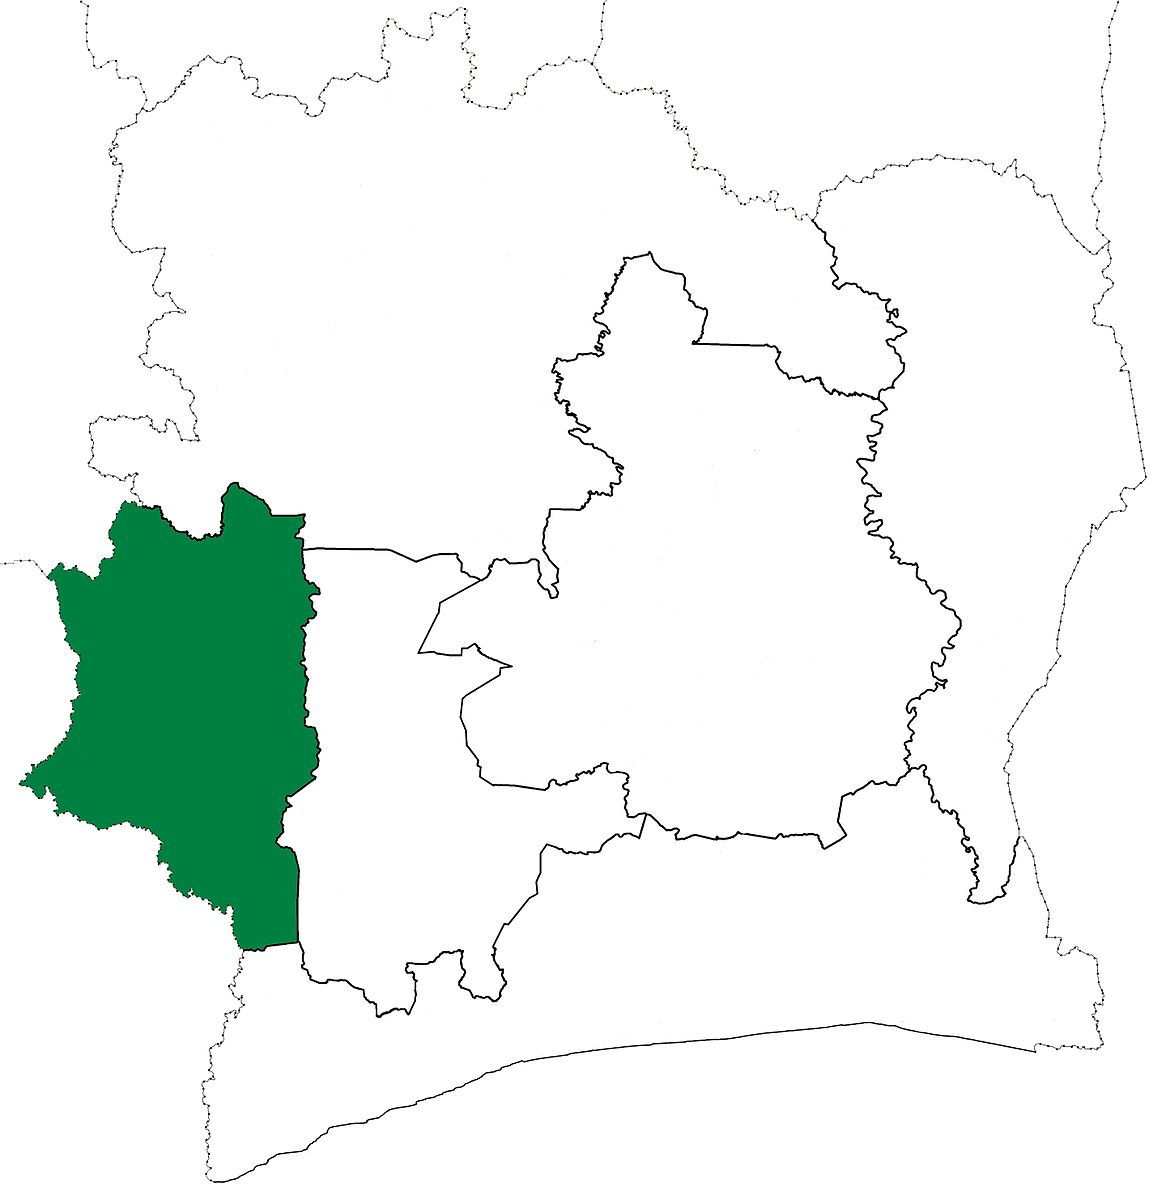 Ouest Department (Ivory Coast)